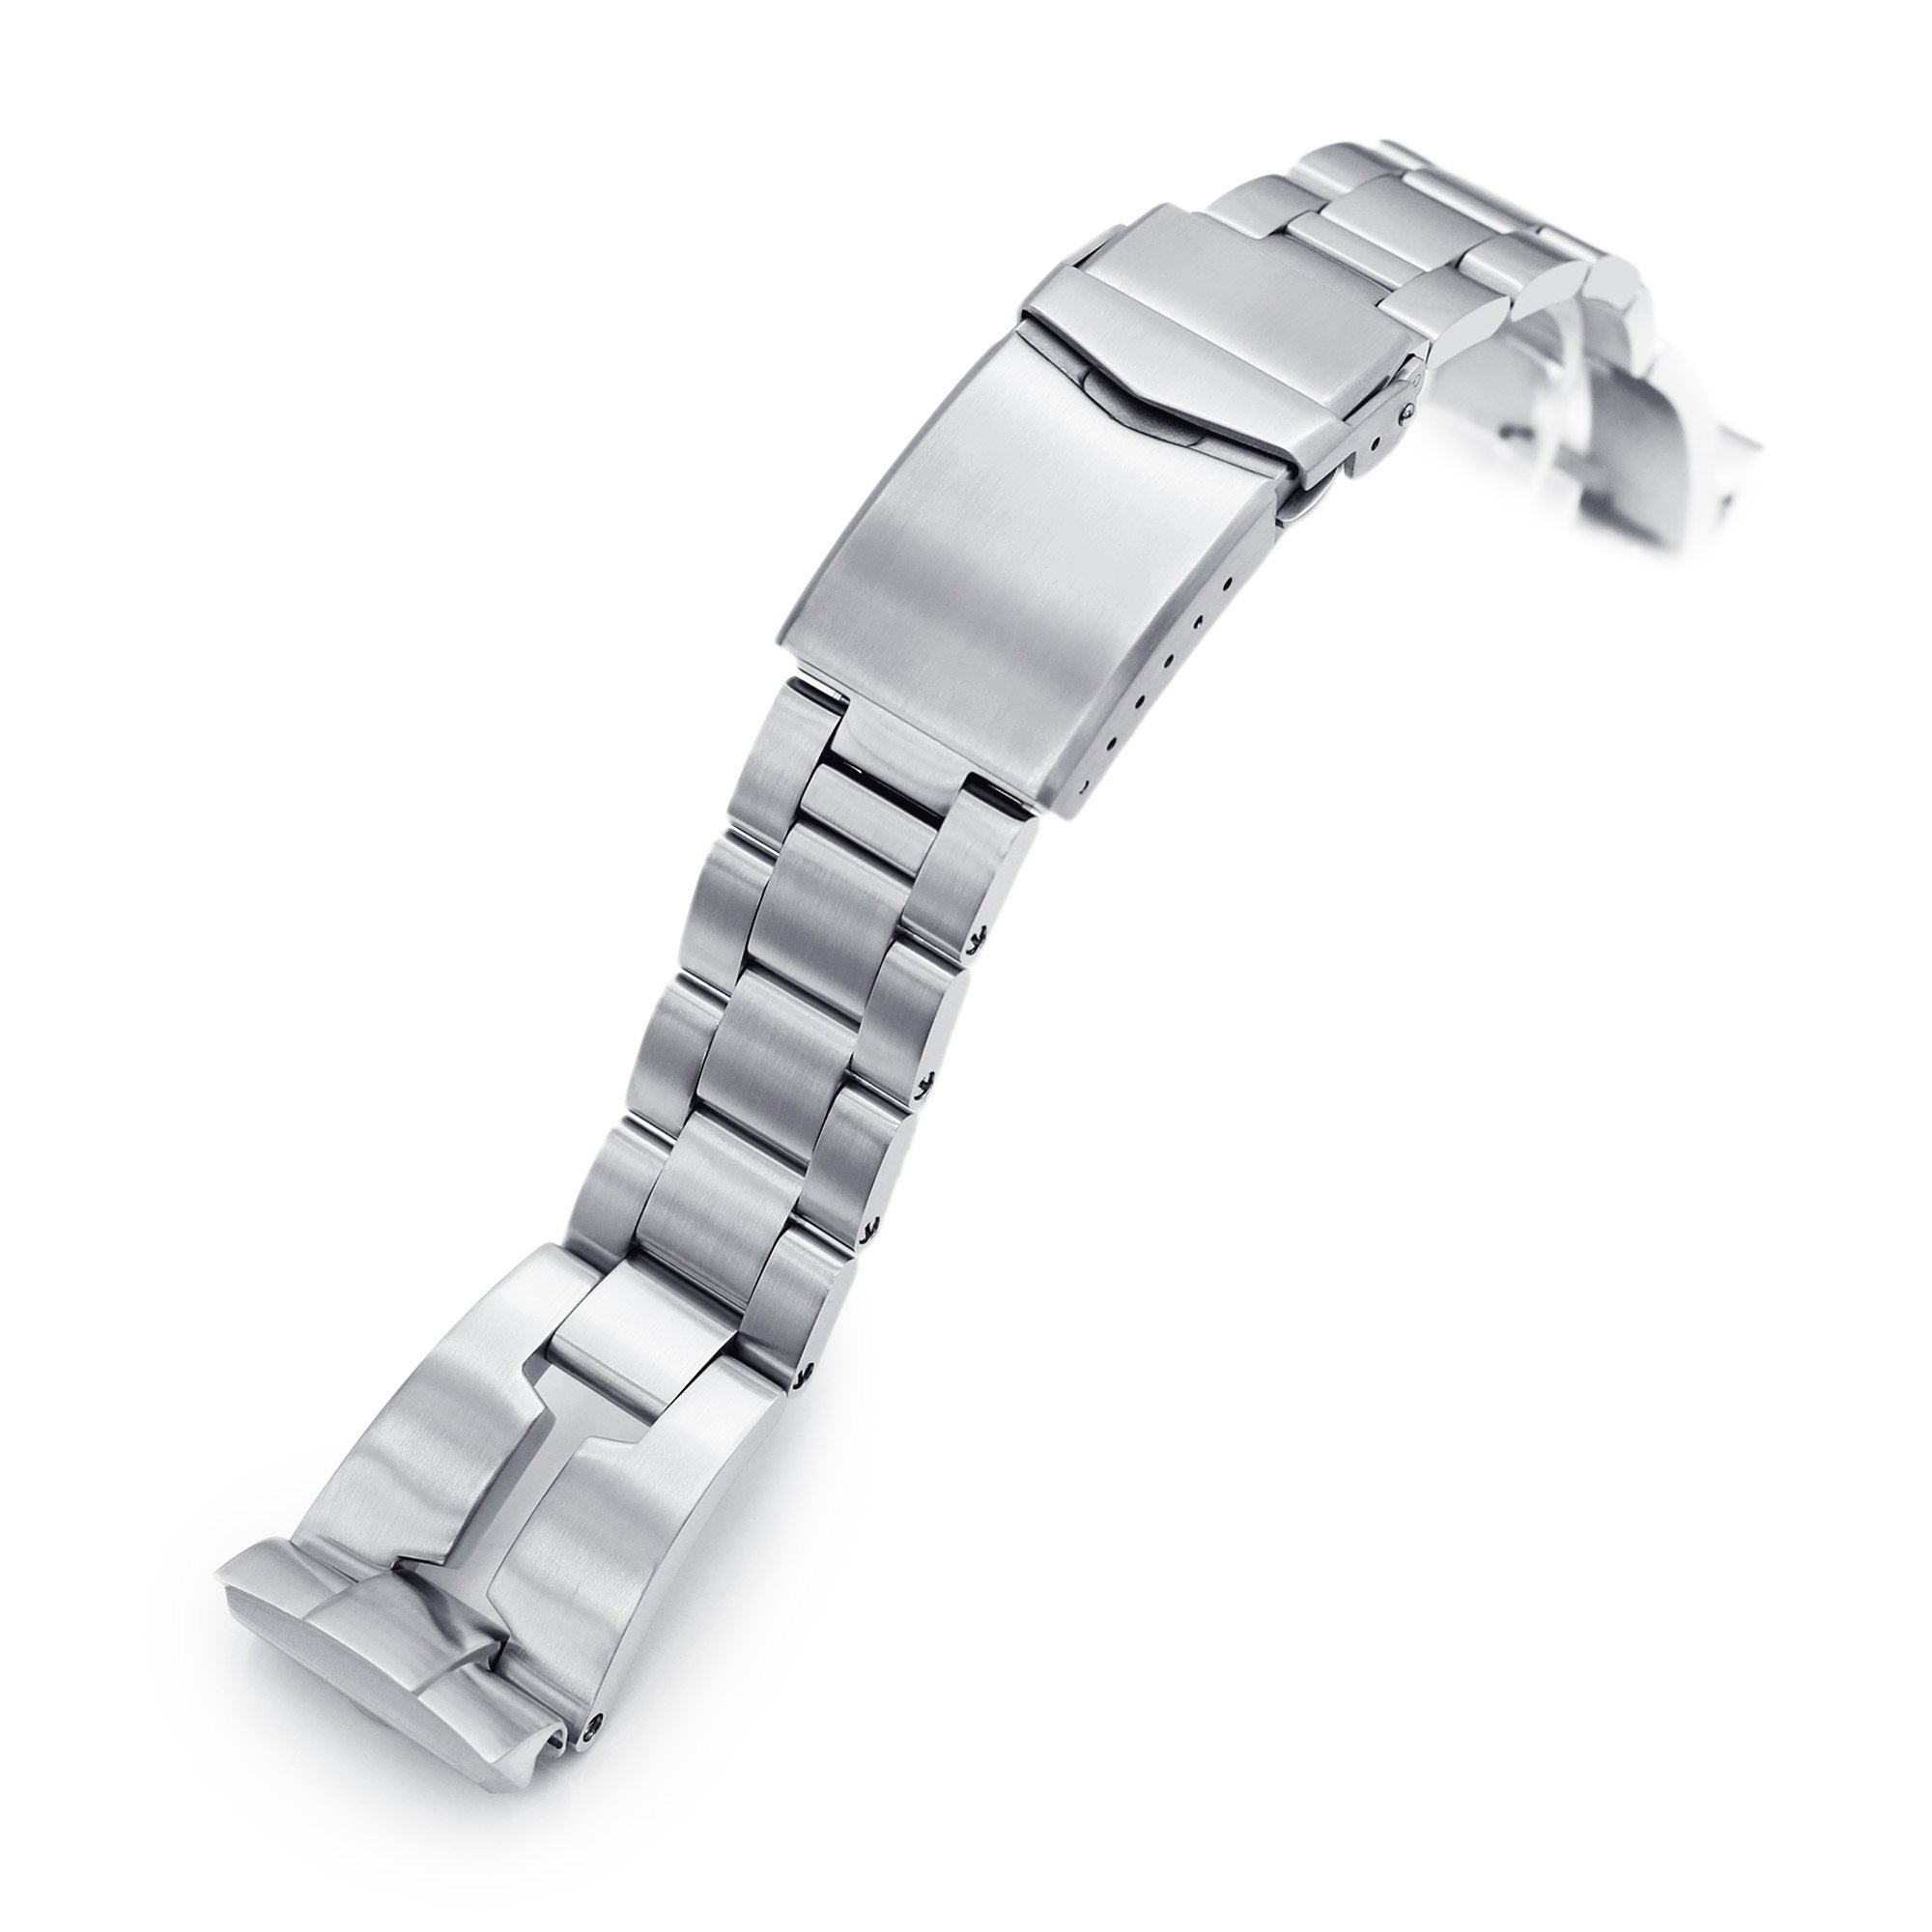 22mm Retro Razor 316L Stainless Steel Watch Bracelet for Seiko new Turtles SRP777 Brushed V-Clasp Strapcode Watch Bands